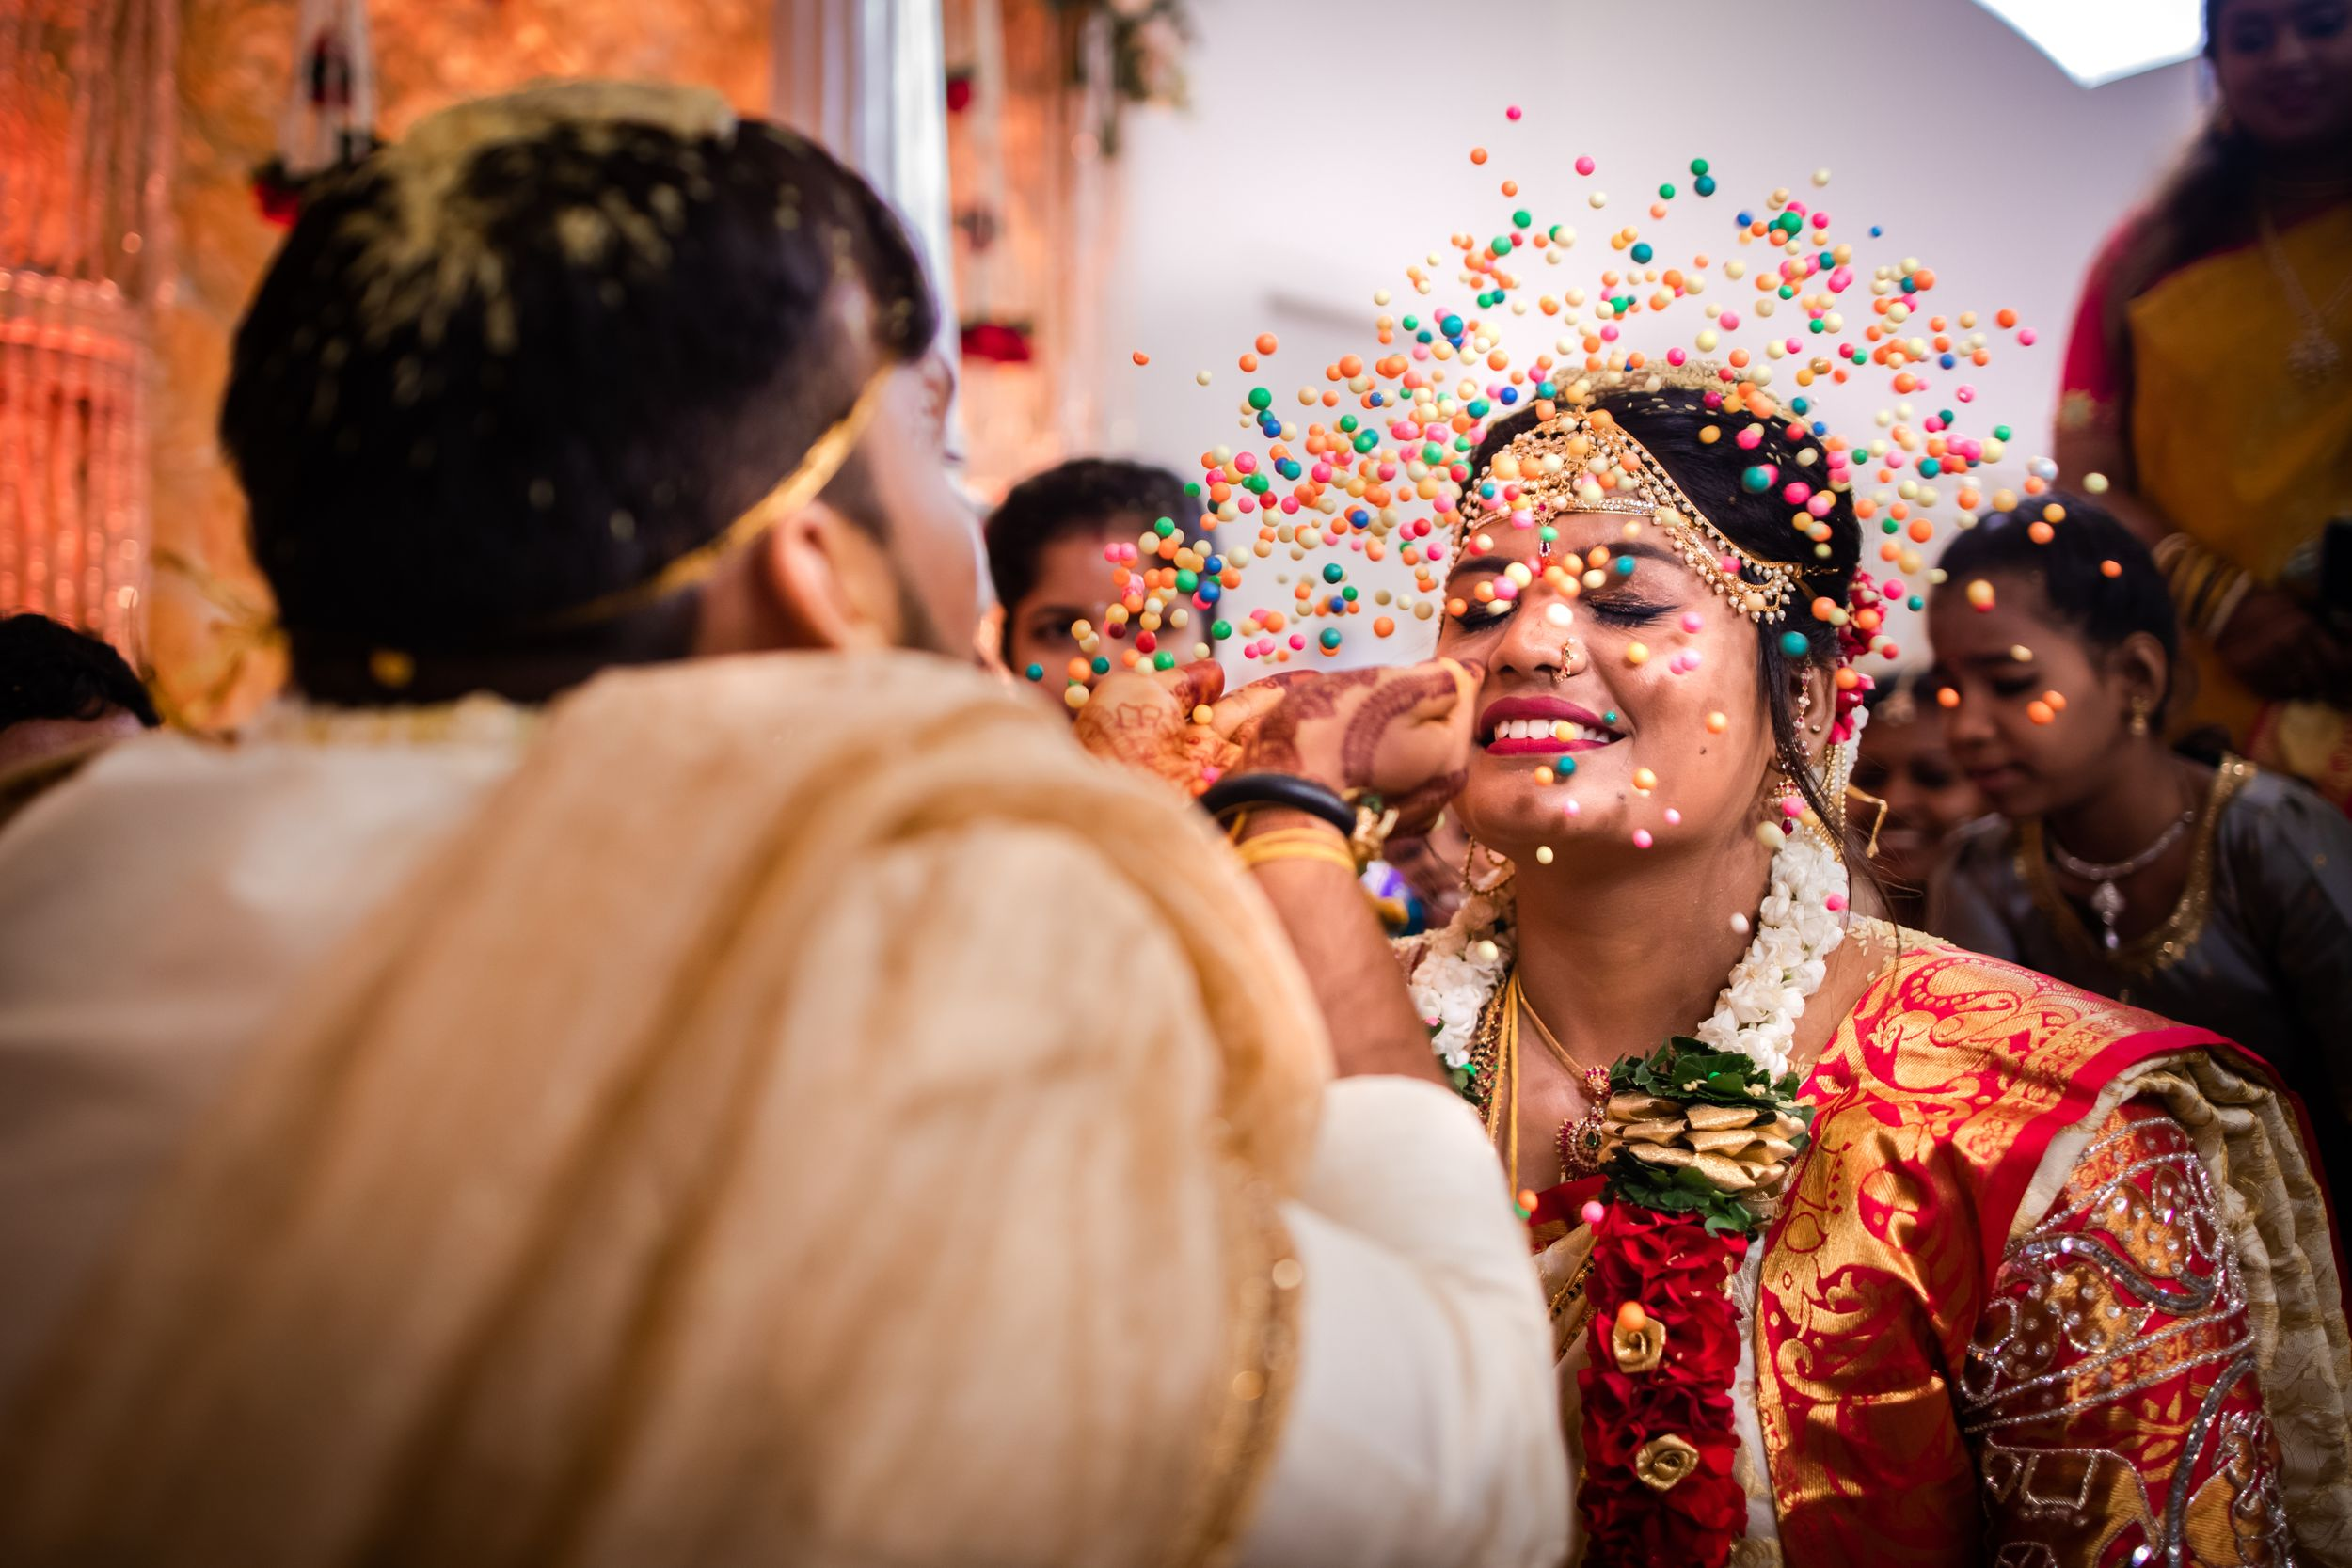 Groom showering on bride at Indian wedding ritual